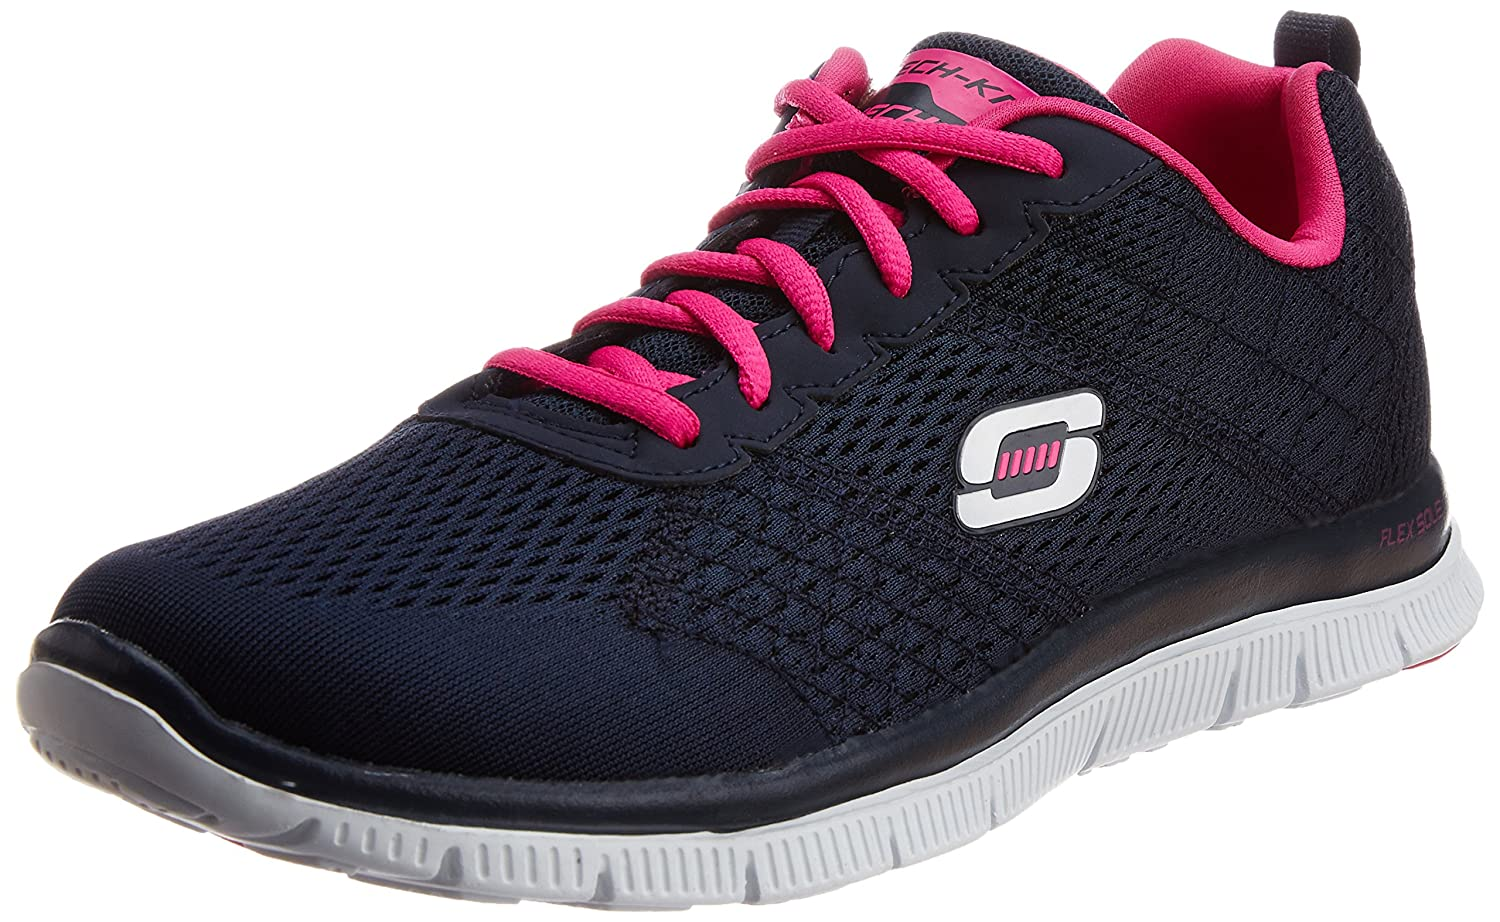 Skechers Sport Women's Obvious Choice Fashion Sneaker B01JPGKLHQ 6.5 C/D US Women|Navy/Pink